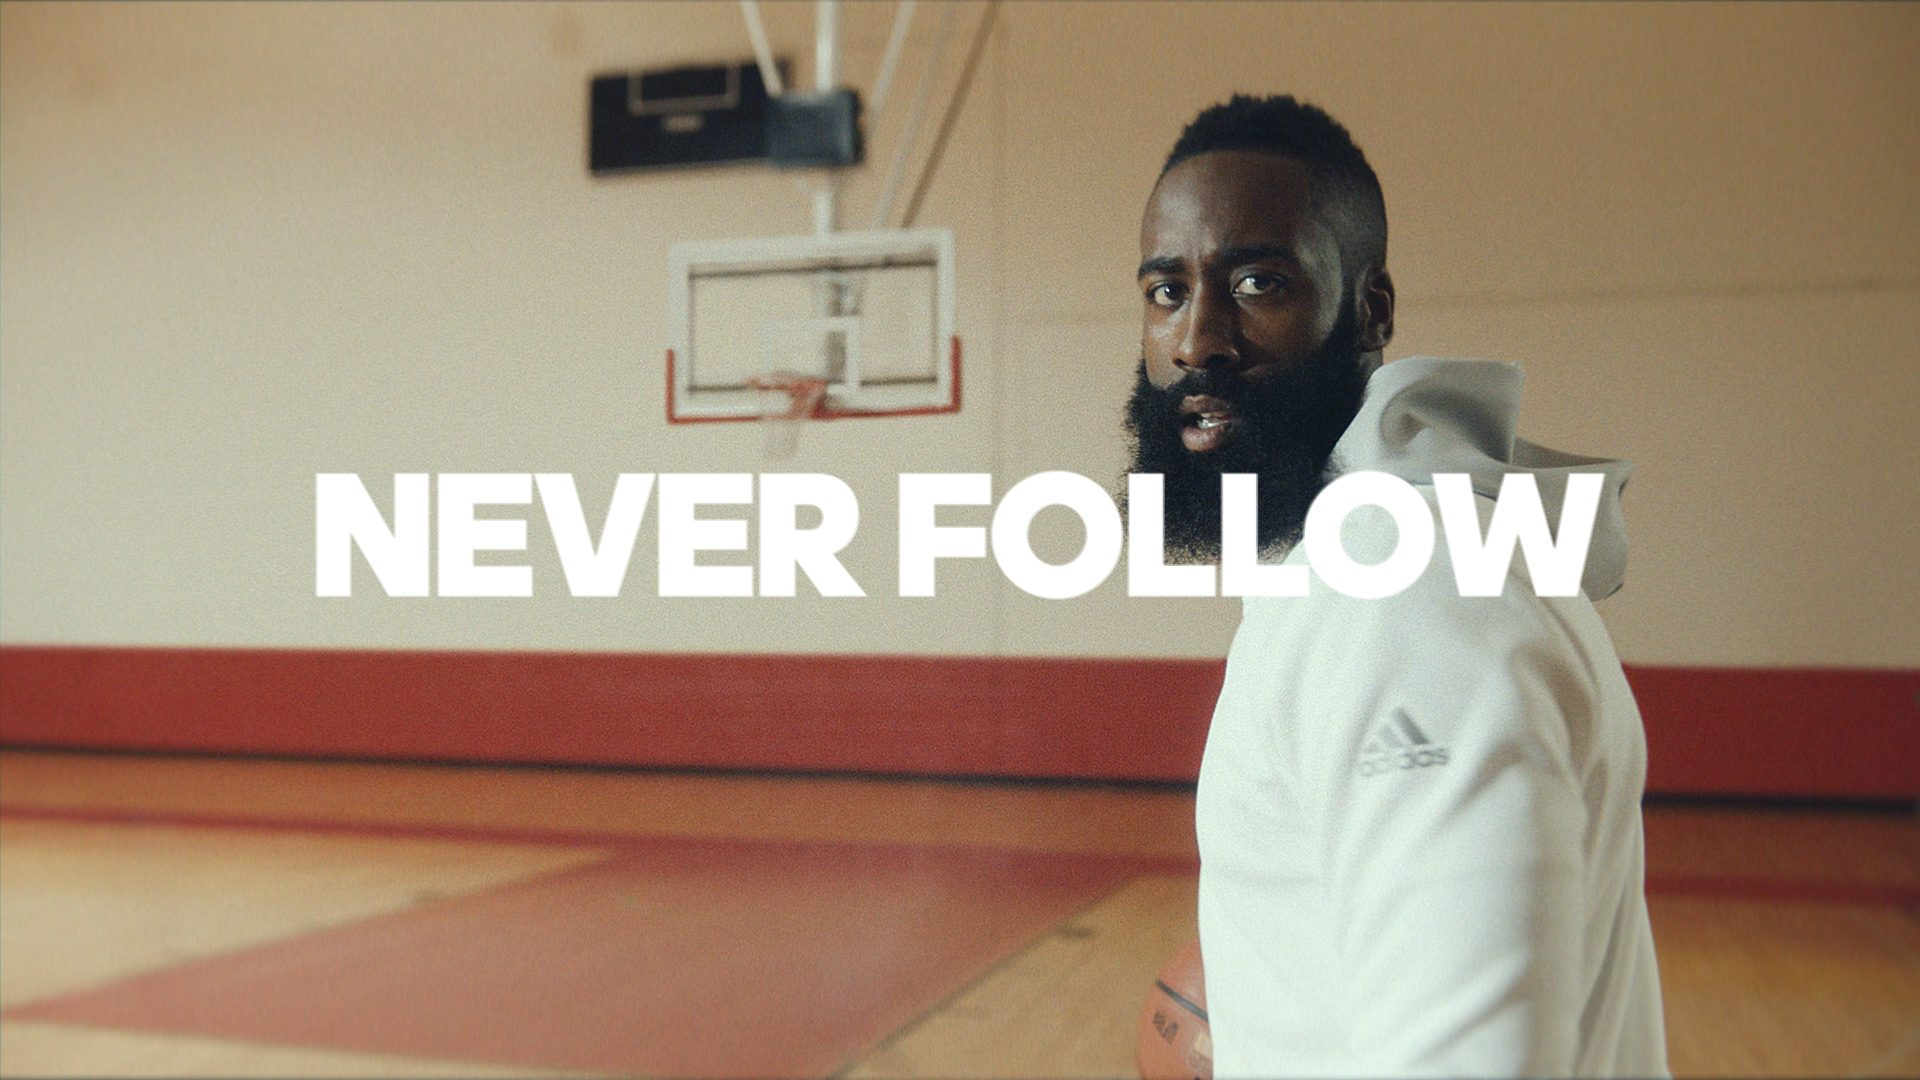 james harden stands alone in 39 creators never follow 39 adidas video hardwood and hollywood. Black Bedroom Furniture Sets. Home Design Ideas